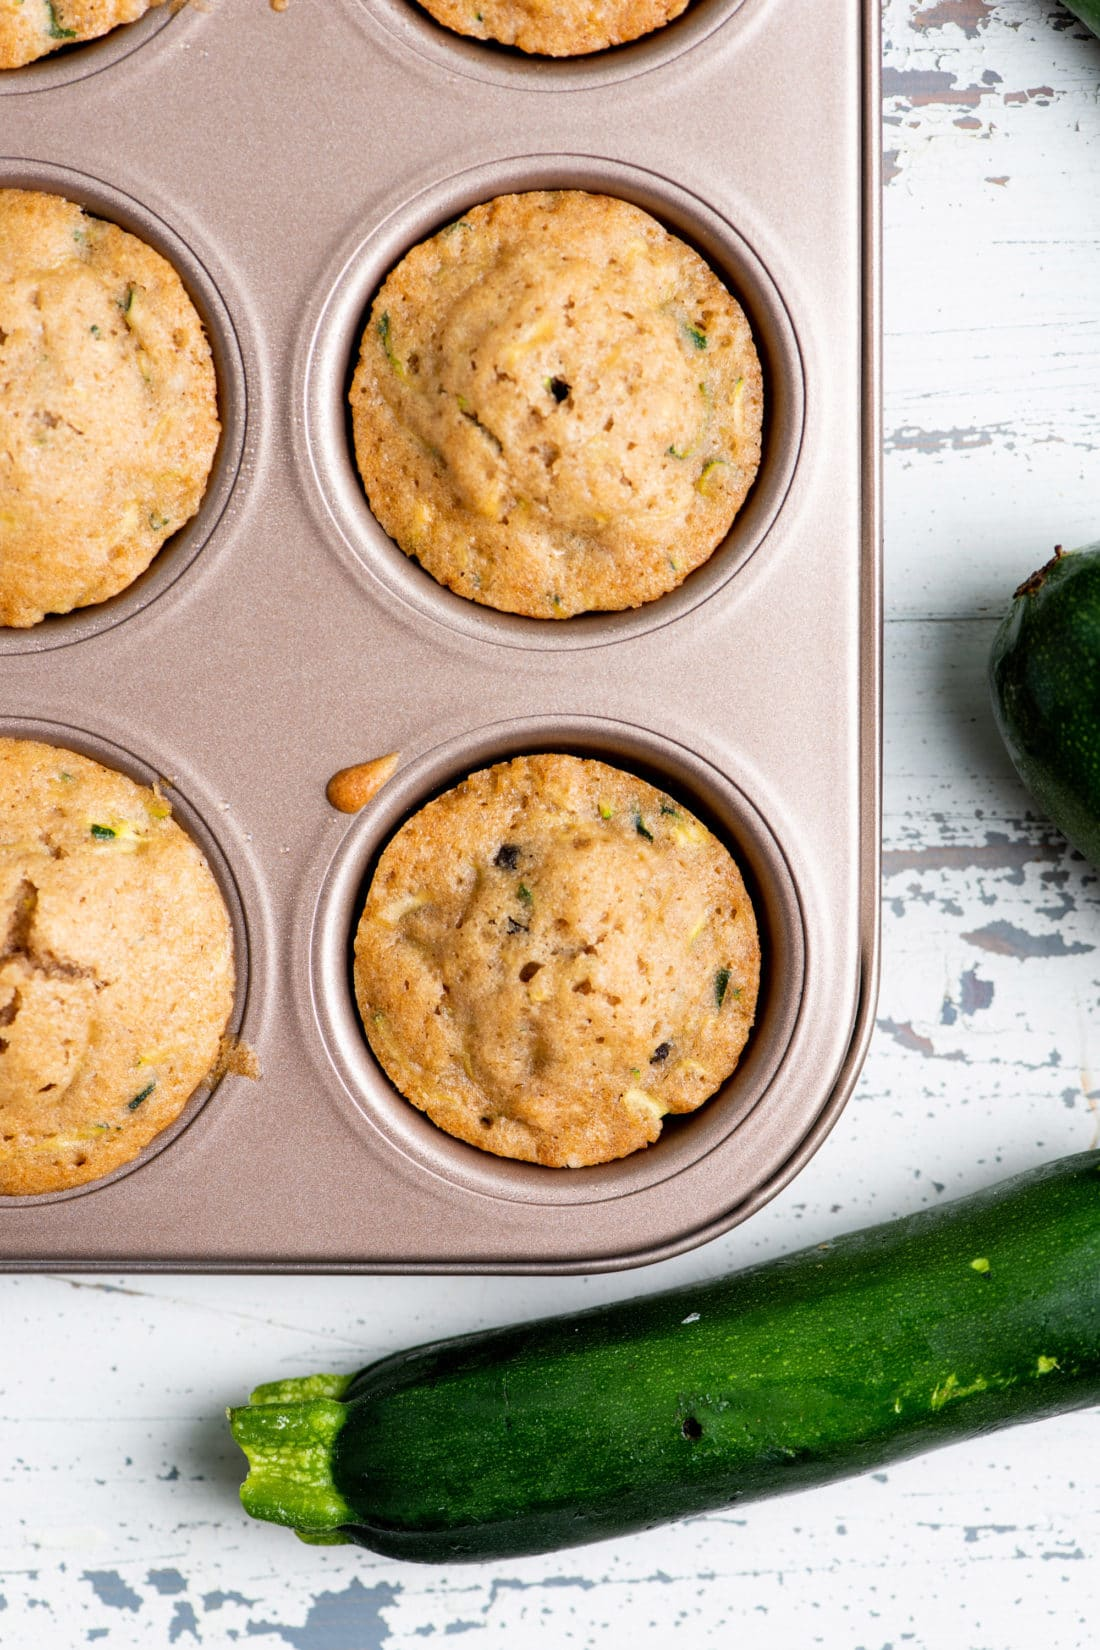 How to Make Zucchini Muffins